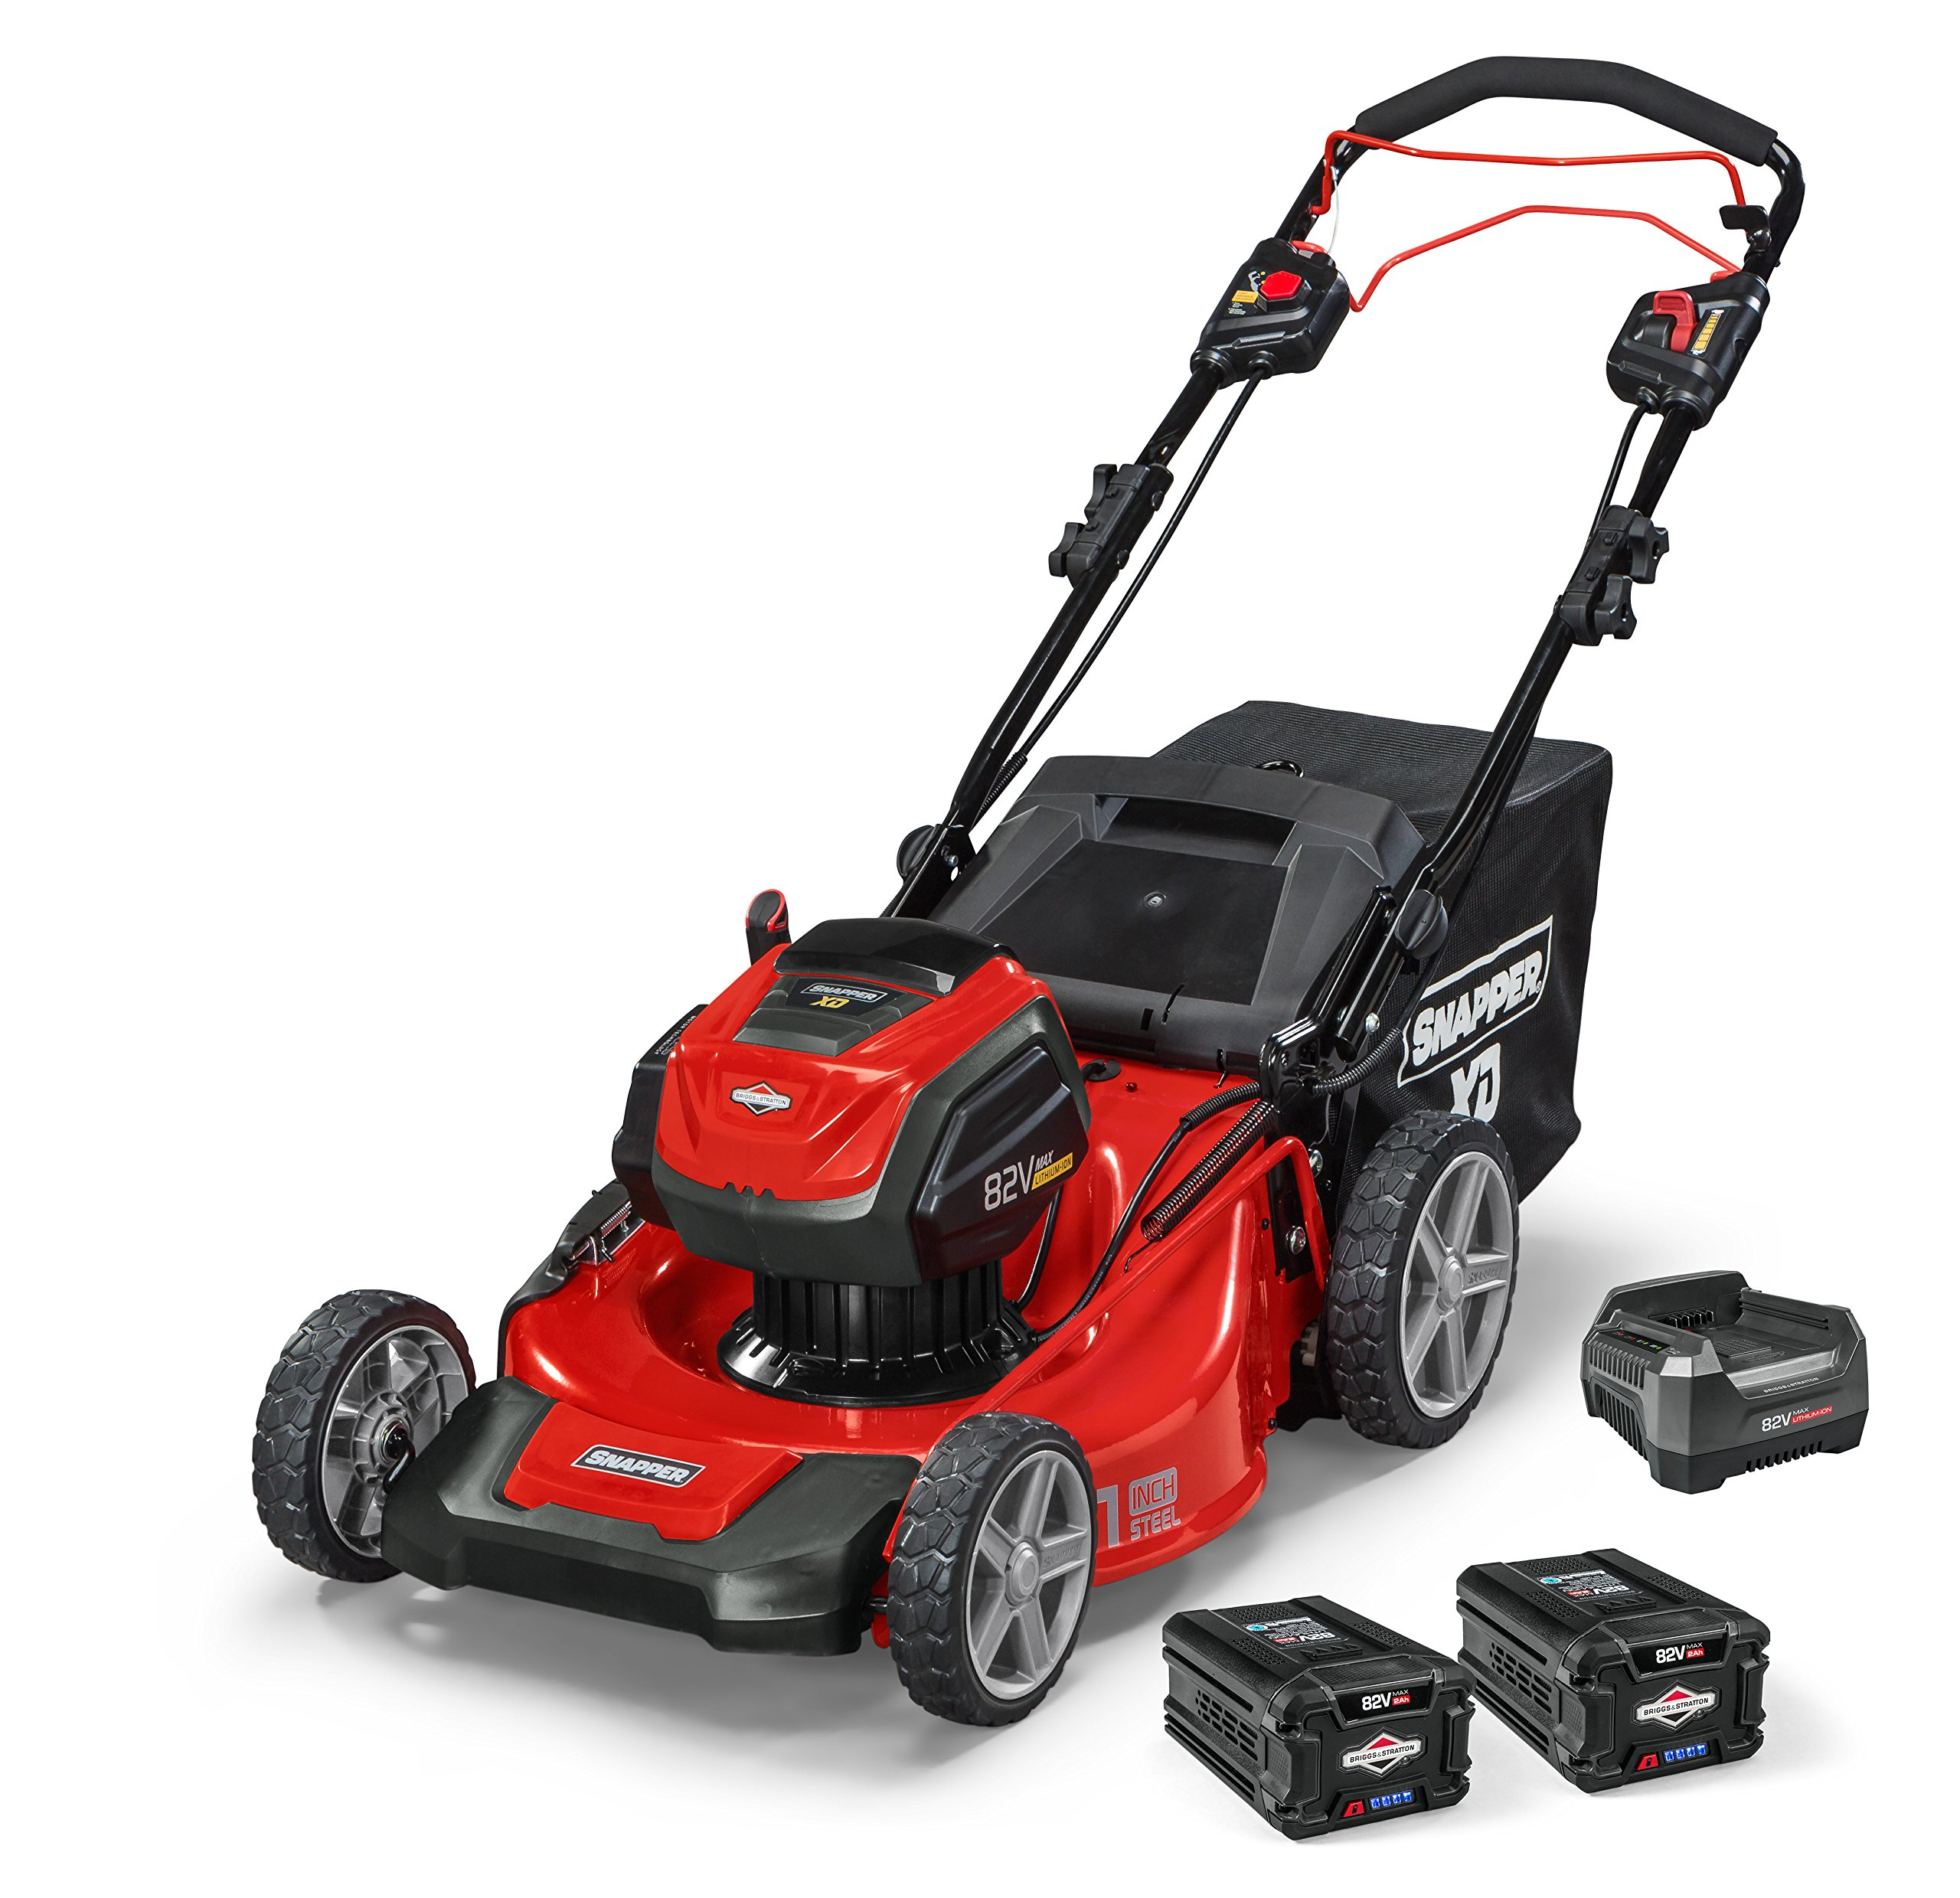 Snapper XD SXD21SPWM82K 82V Cordless 21-Inch Self-Propelled Walk Mower Kit with (2) 2Ah Battery & (1) Rapid Charger